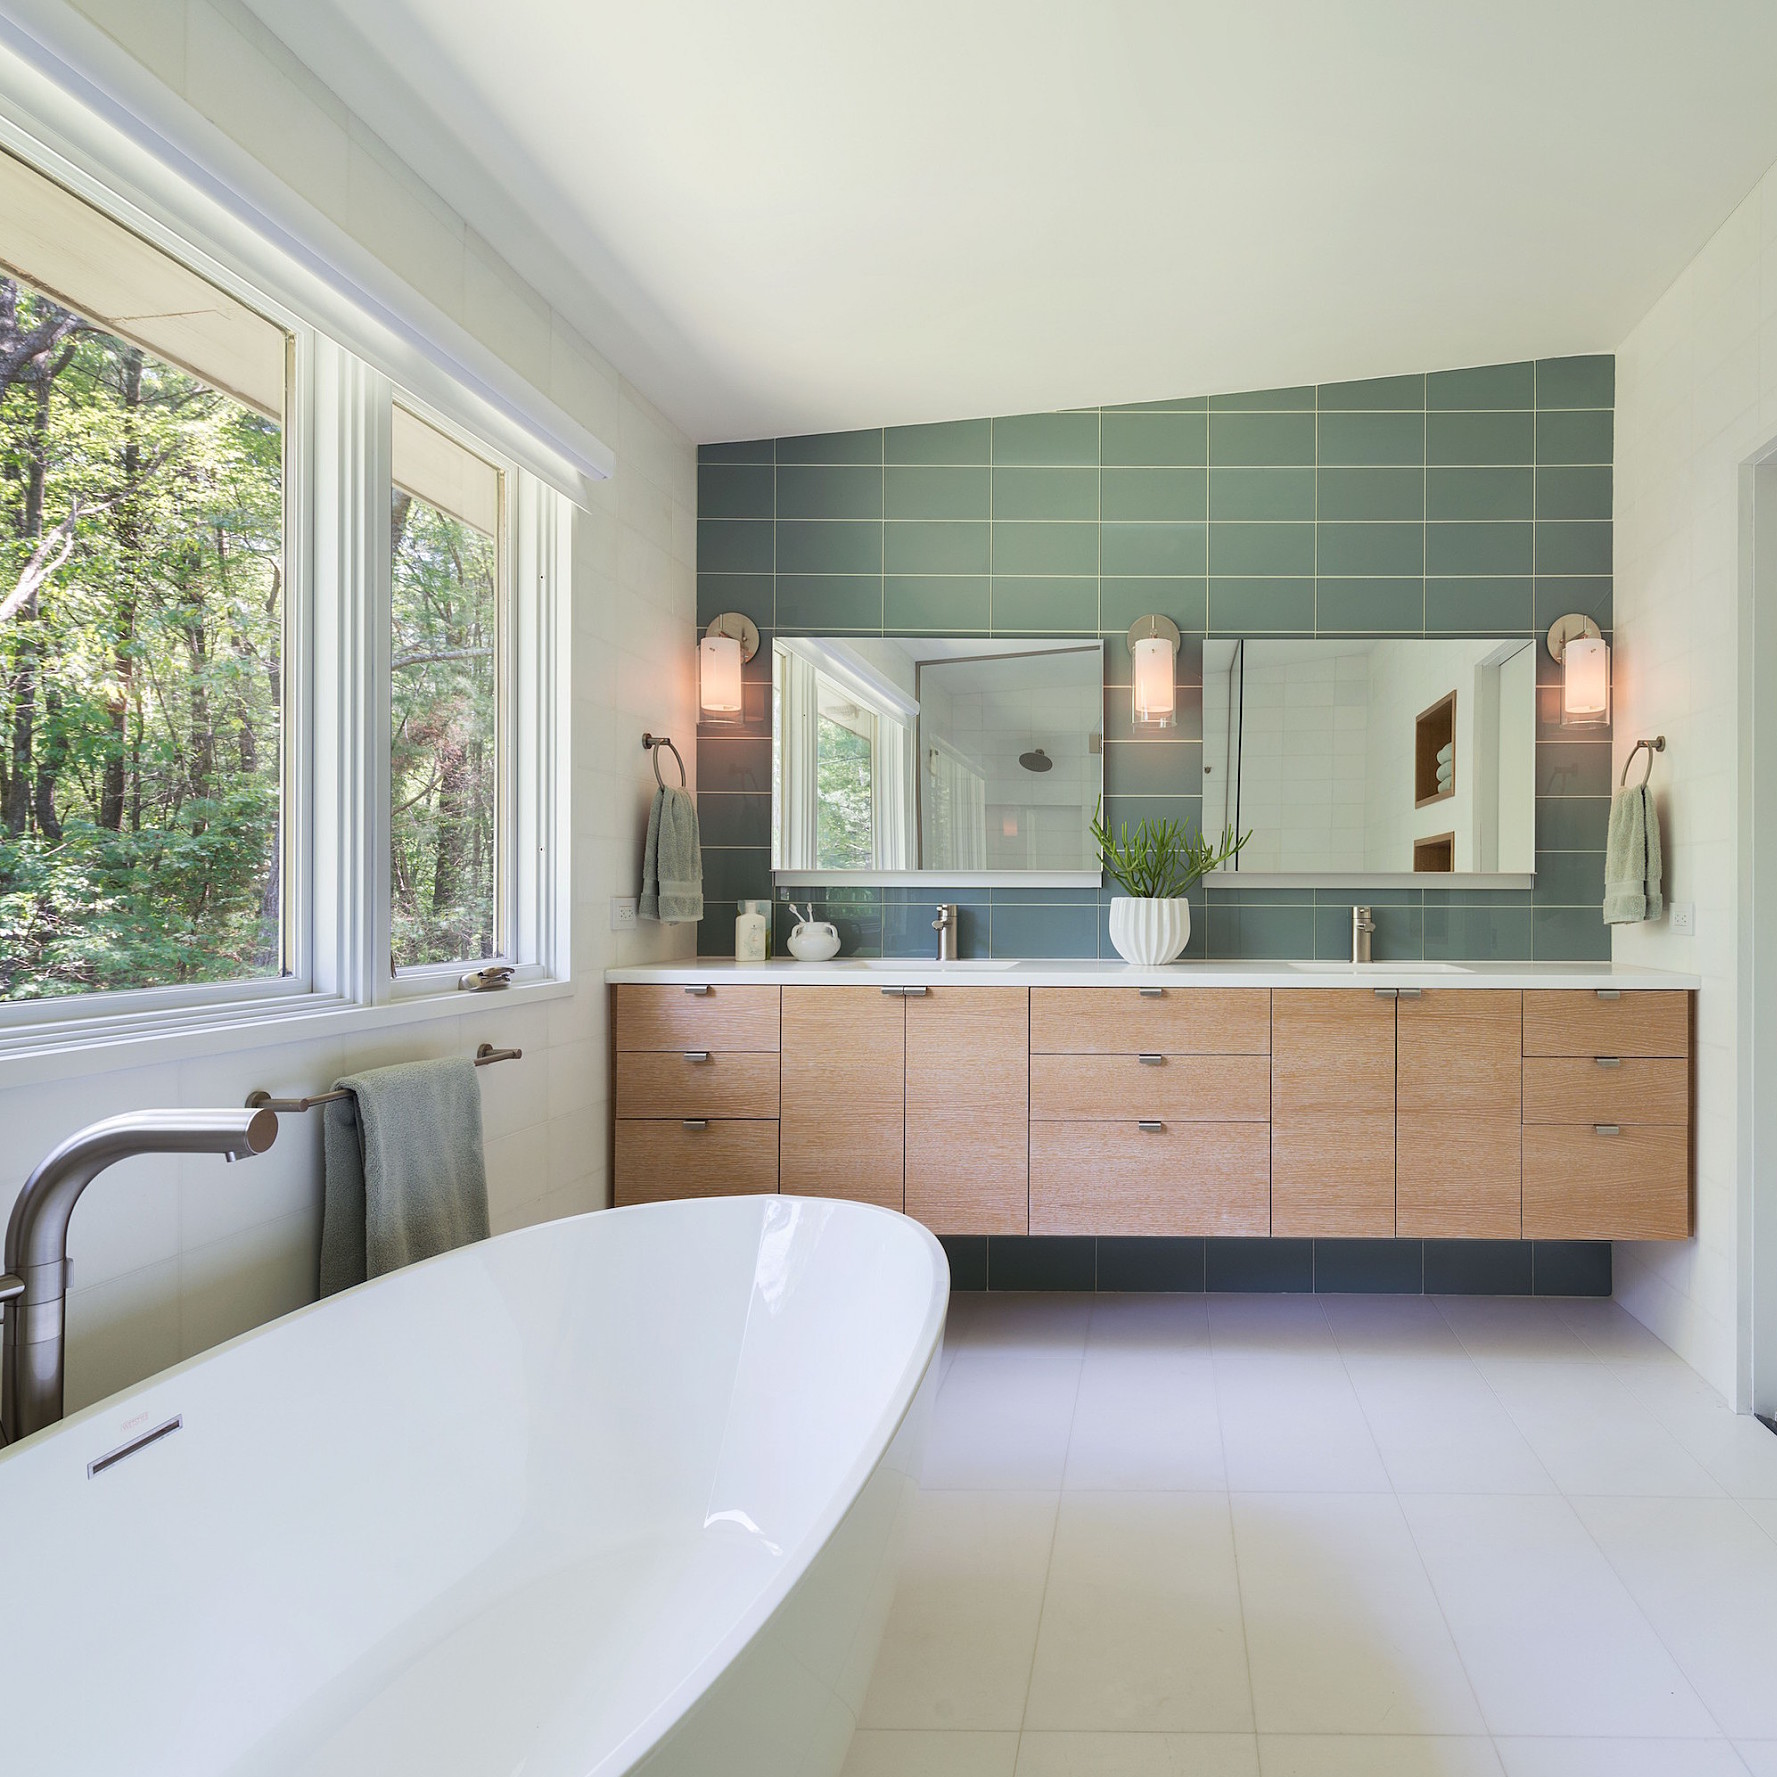 green-spa-bathroom-1016.jpeg (skyword:349569)